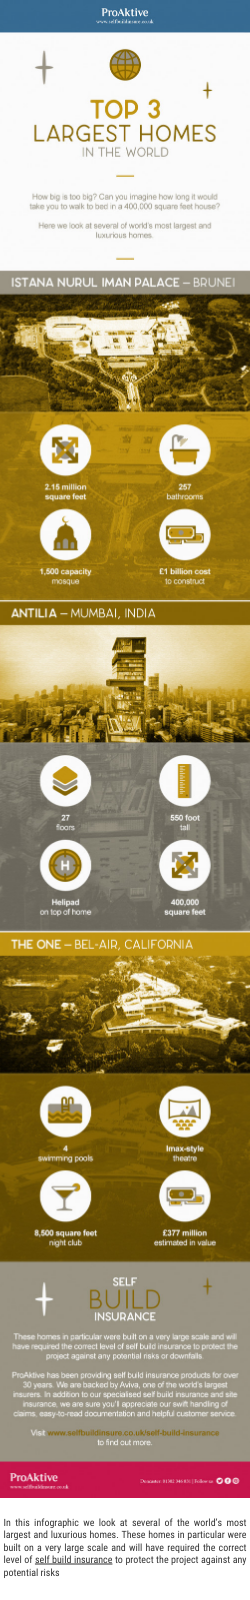 Top 3 Largest Homes in the World - by Lisa Parker [Infographic]